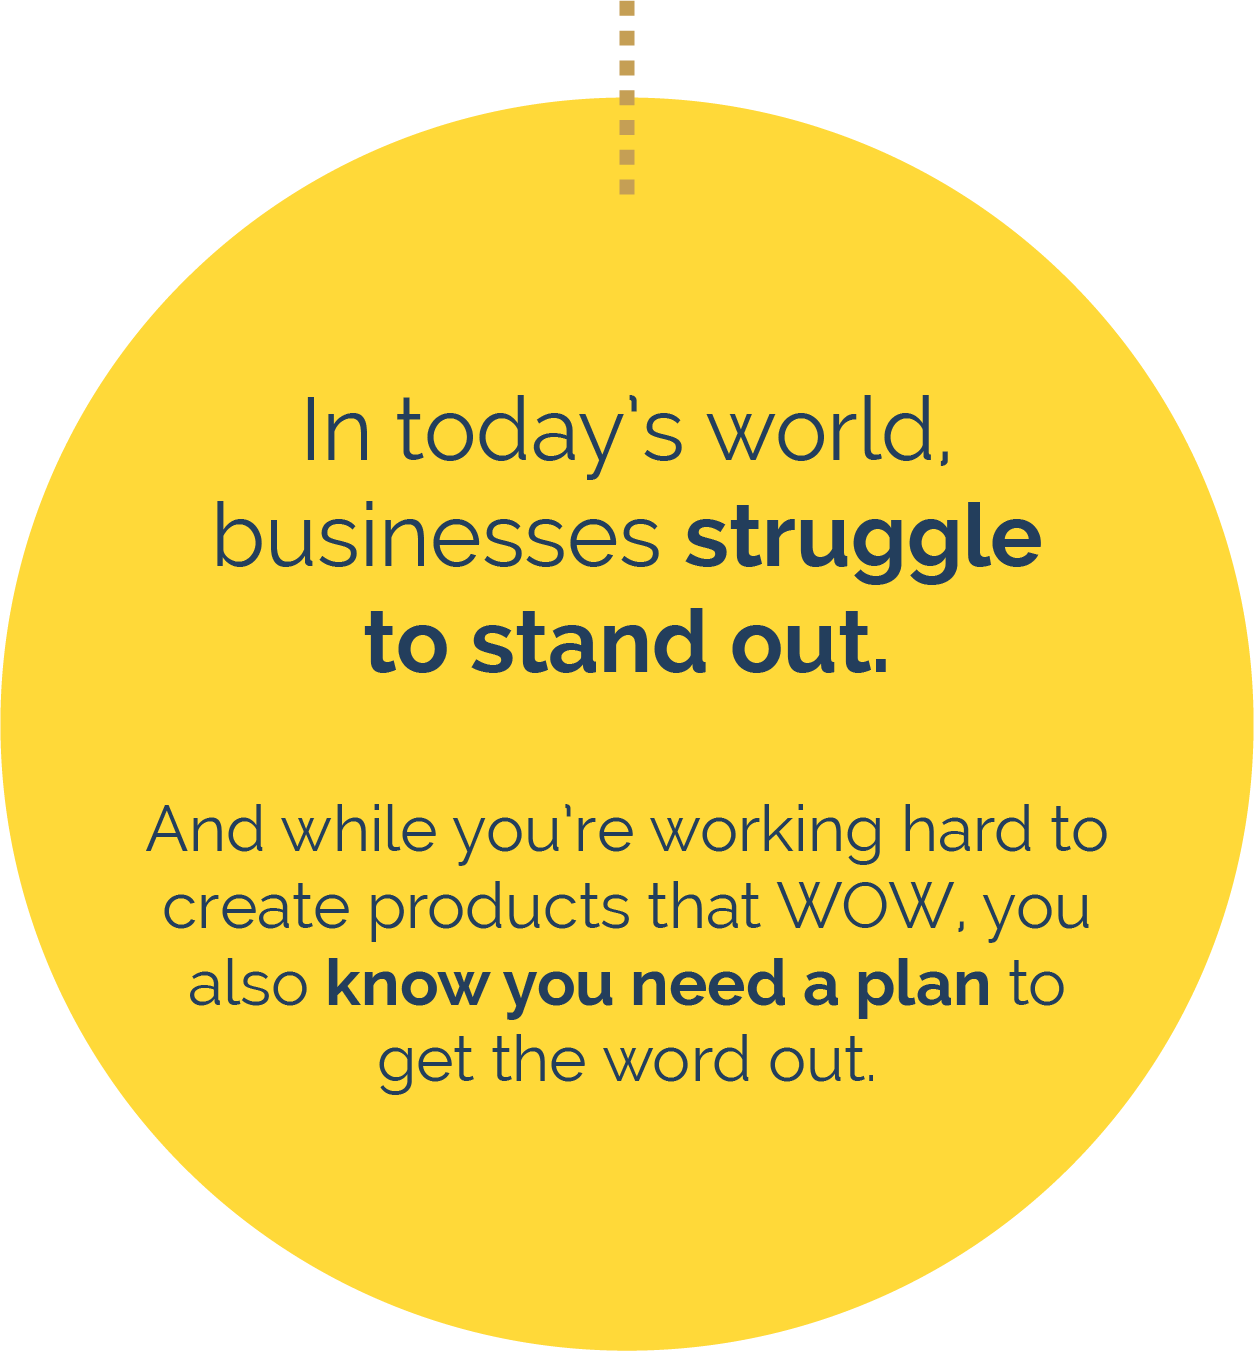 In today's world, businesses struggle to stand out. And while you're working hard to create products that WOW, you also know you need a plan to get the word out.